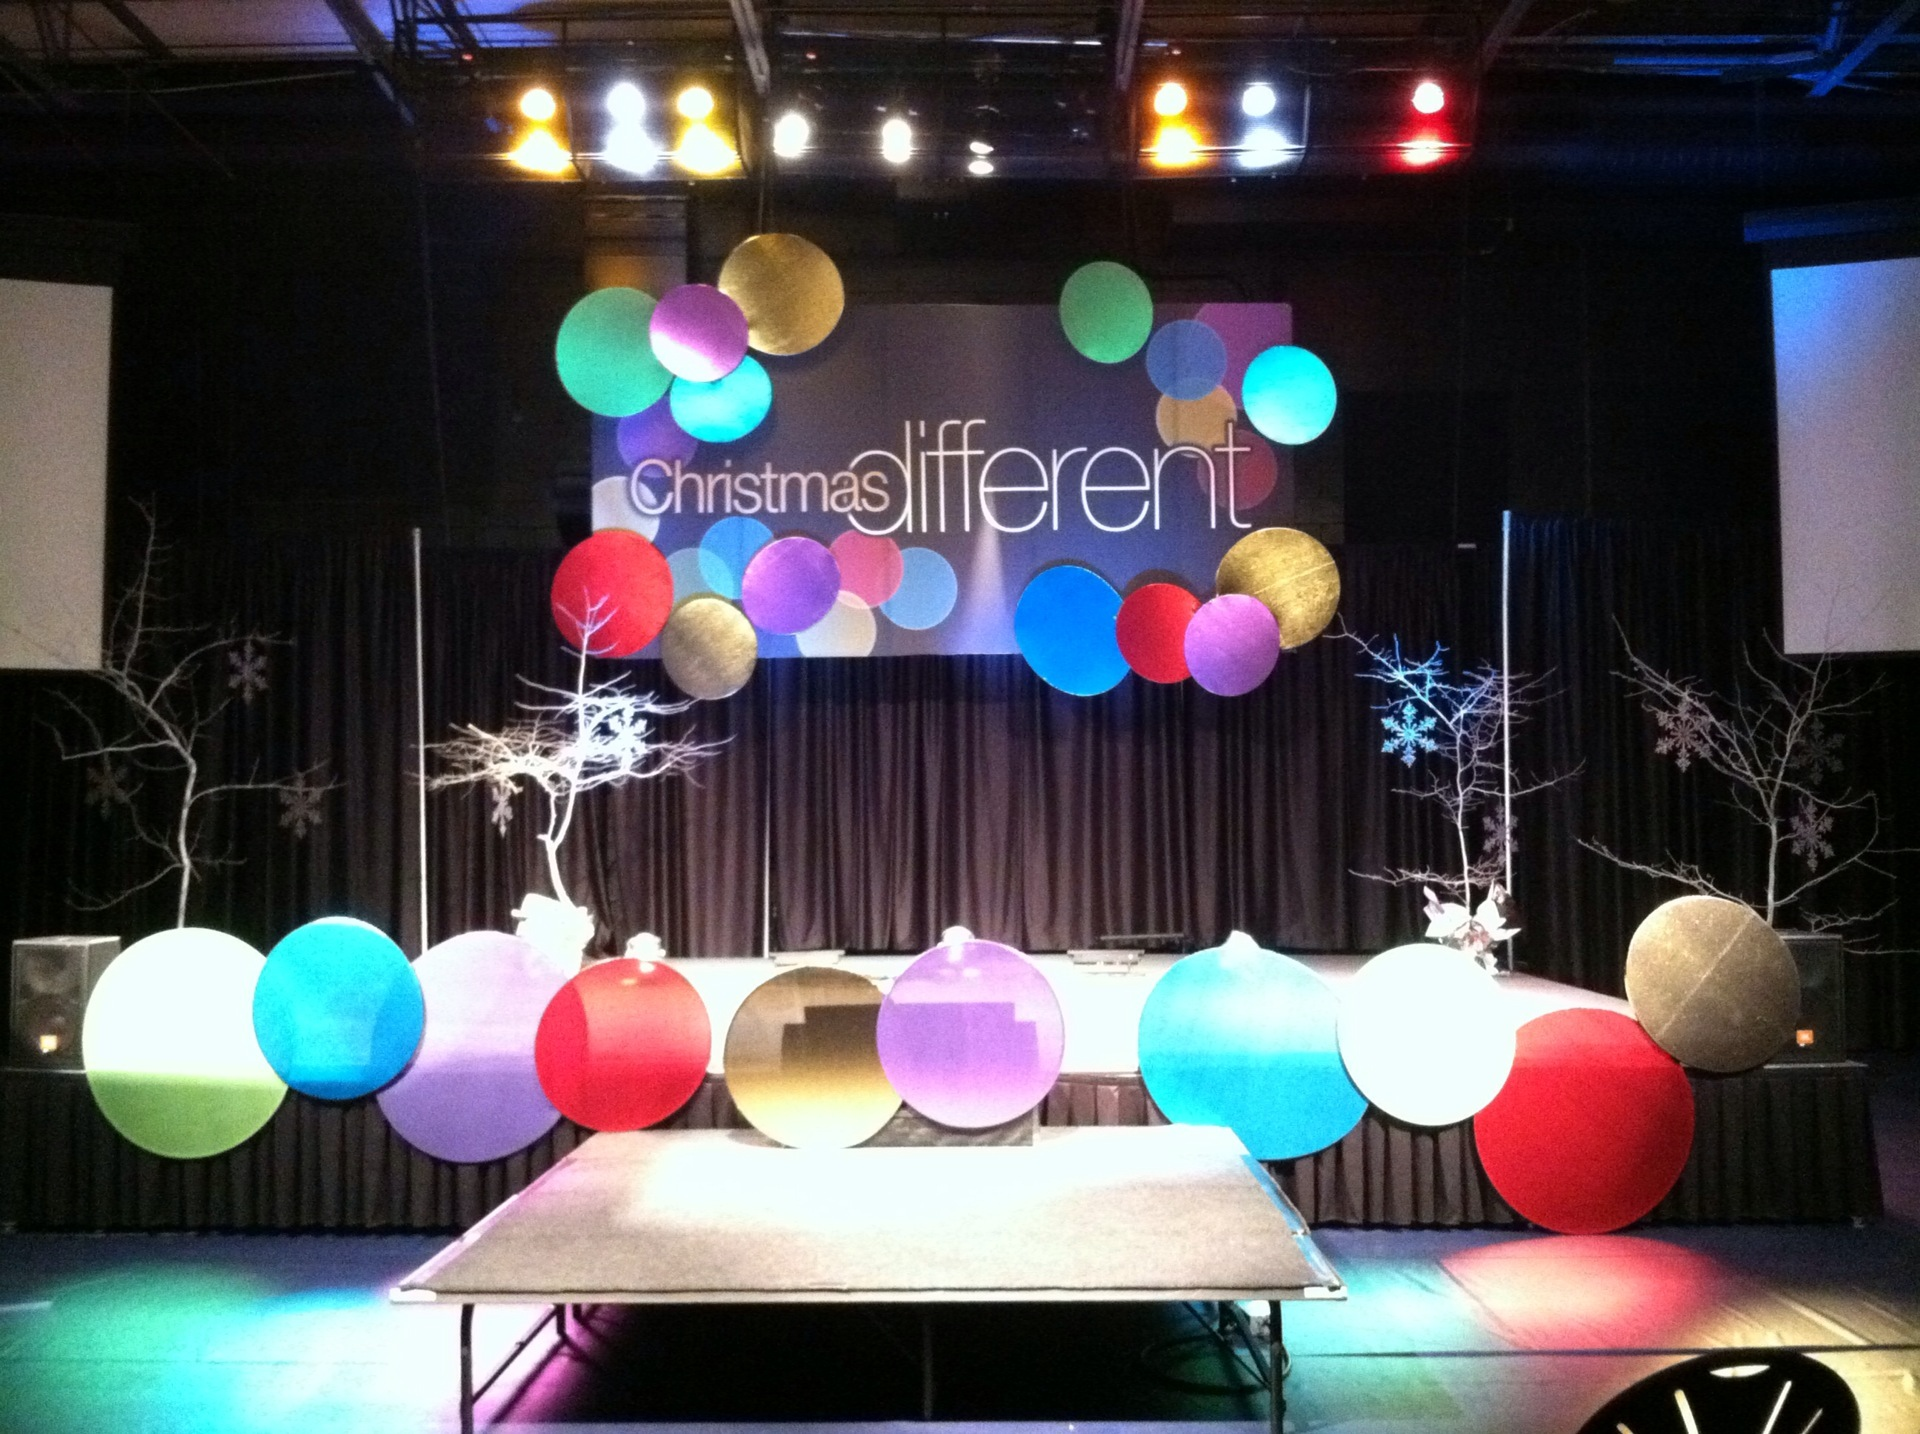 big stage on a small stage on pinterest discover the best trending church stage decorations ideas and more fabrics companies in usa and church stage - Small Church Stage Design Ideas